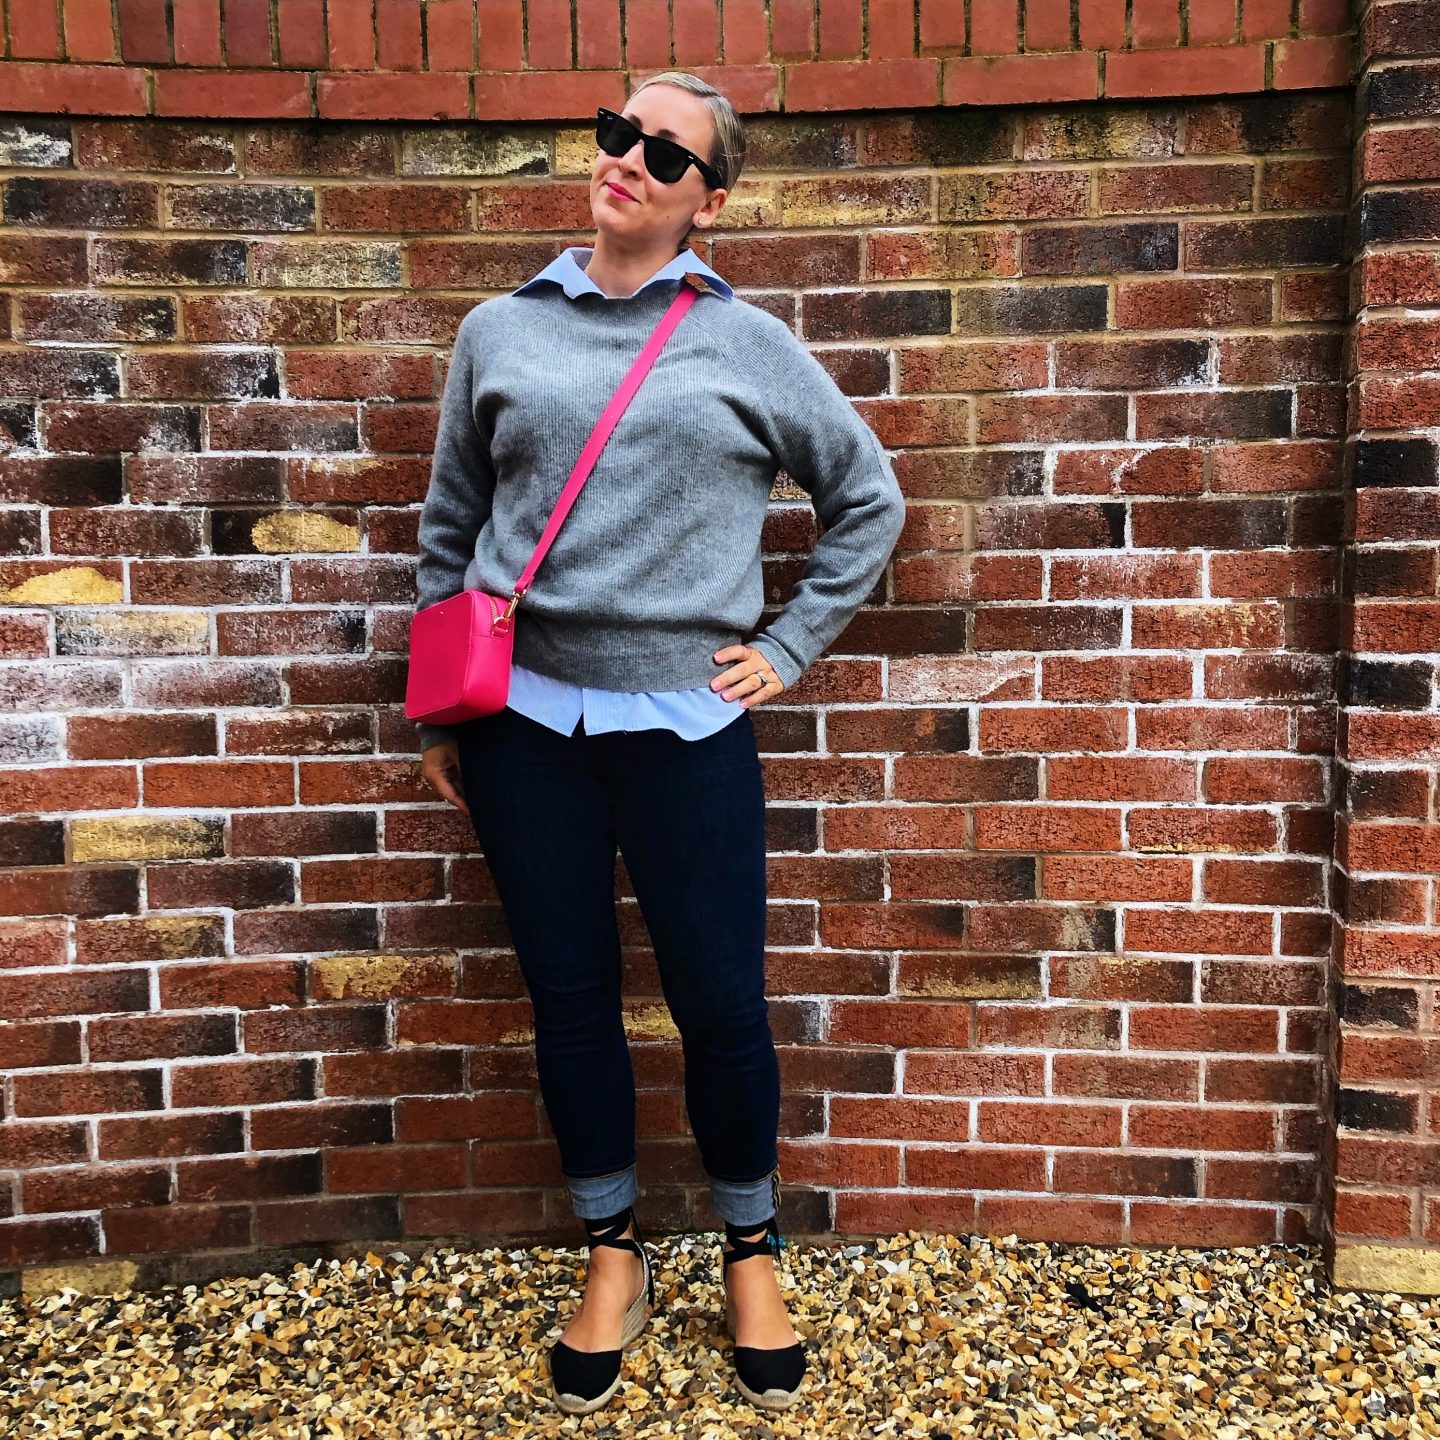 Becci wearing Castañer espadrilles styles with jeans and a jumper